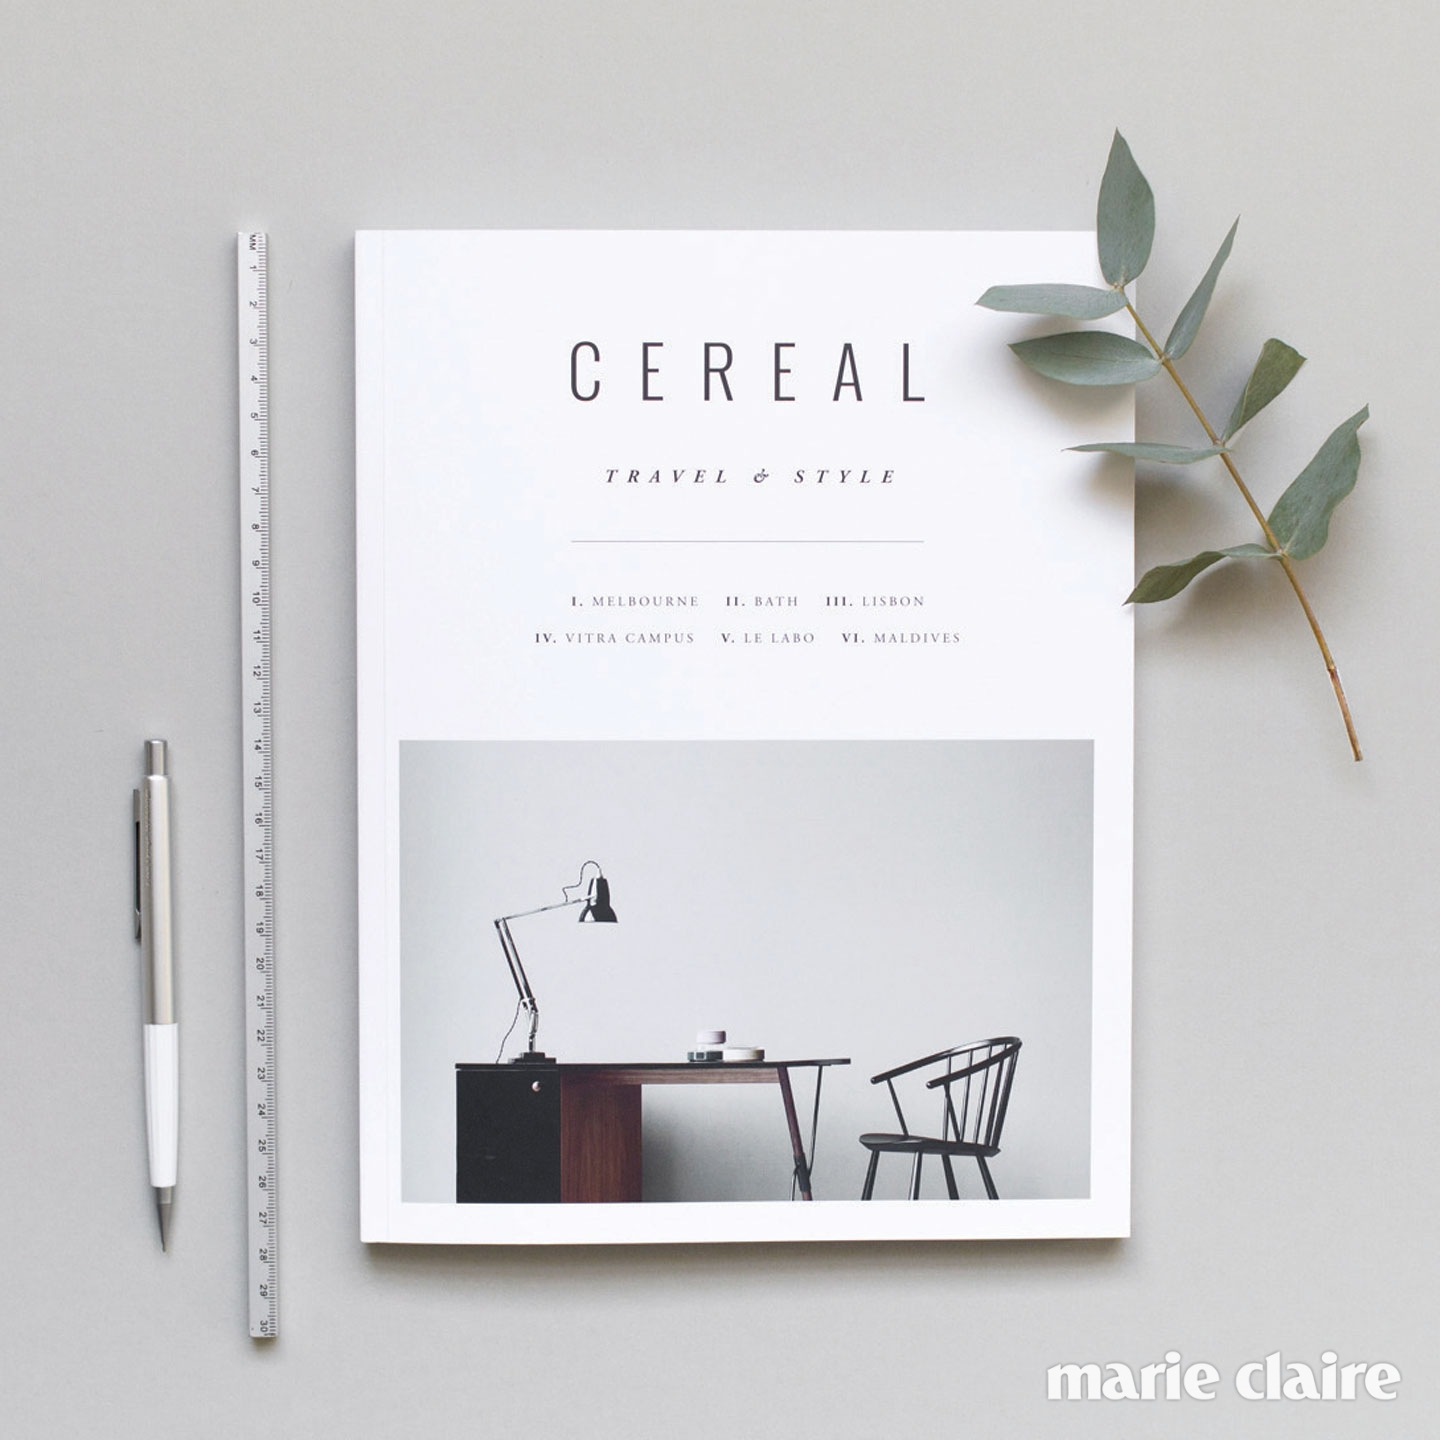 cereal-volume9